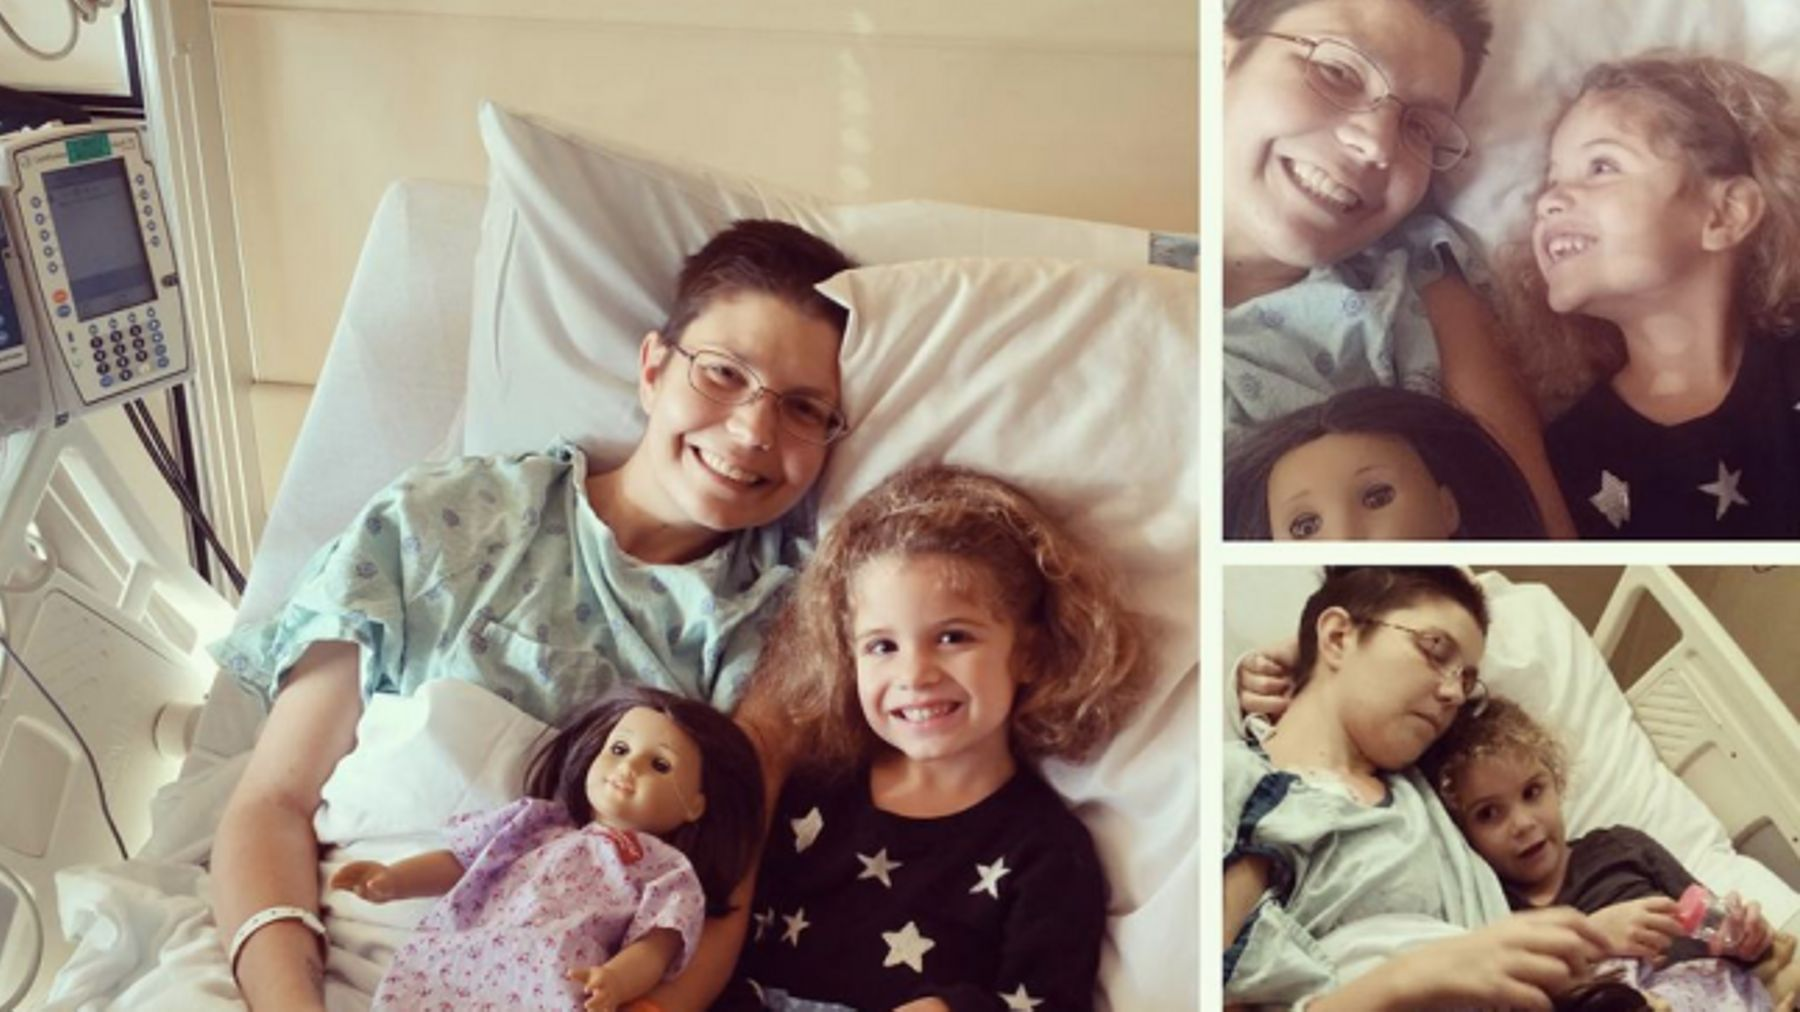 READ: Breast cancer victim's goodbye letter to 4-year-old